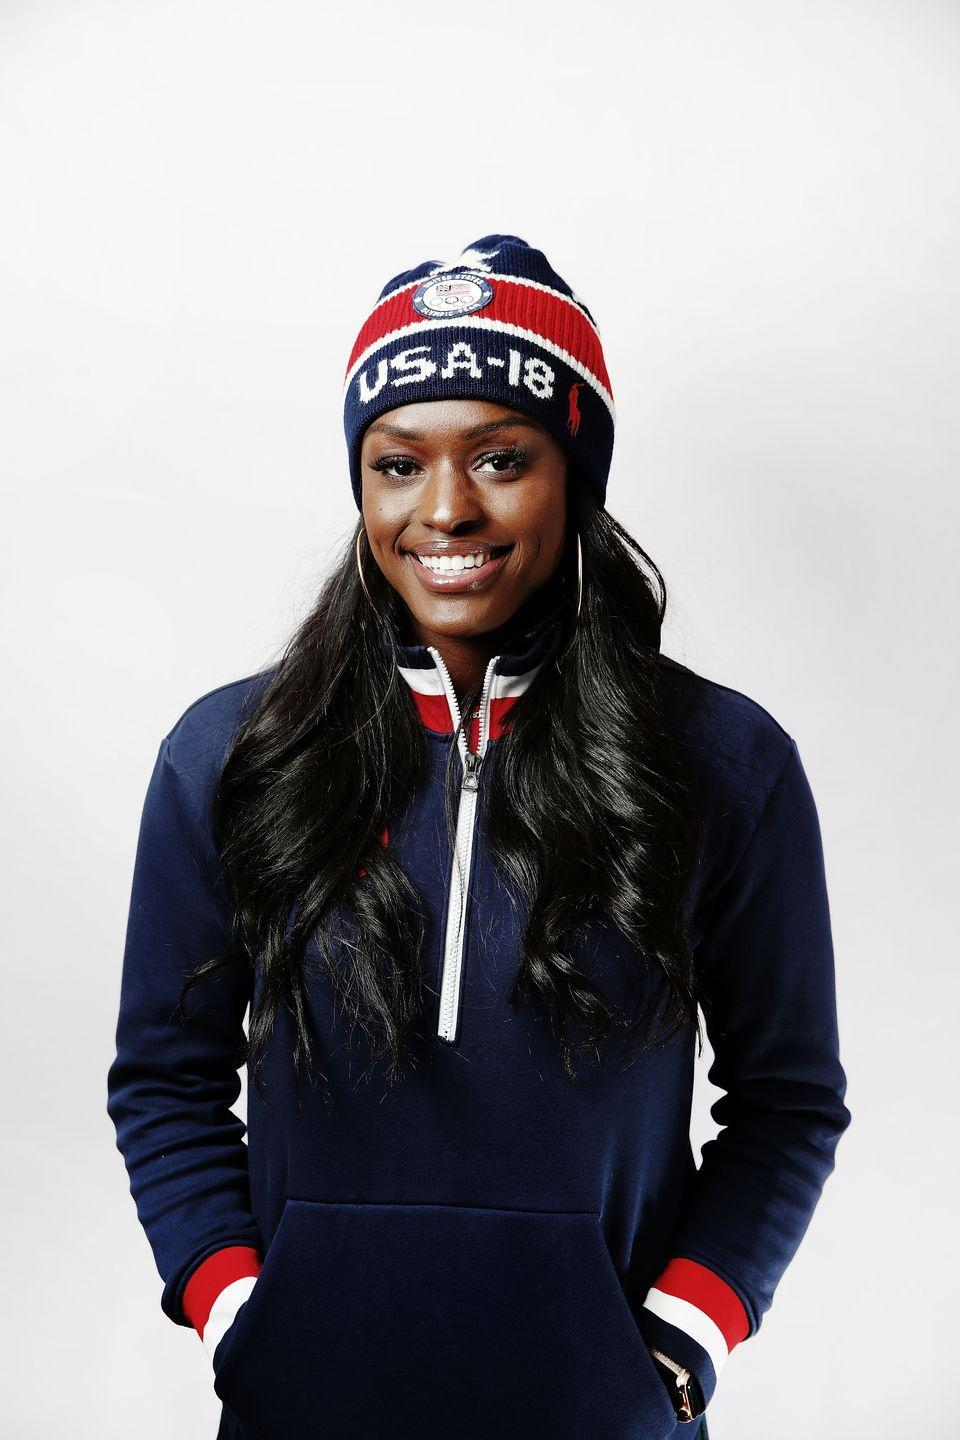 """<p><strong>Sport: </strong>Bobsled</p><p>Though she was an All-American track and field star in college, following an ACL injury, Evans set her sites on bobsledding. <a href=""""https://www.teamusa.org/usa-bobsled-skeleton-federation/athletes/aja-evans"""" rel=""""nofollow noopener"""" target=""""_blank"""" data-ylk=""""slk:Just two years after starting the sport"""" class=""""link rapid-noclick-resp"""">Just two years after starting the sport</a>, she won an Olympic bronze medal at Sochi in 2014.</p>"""